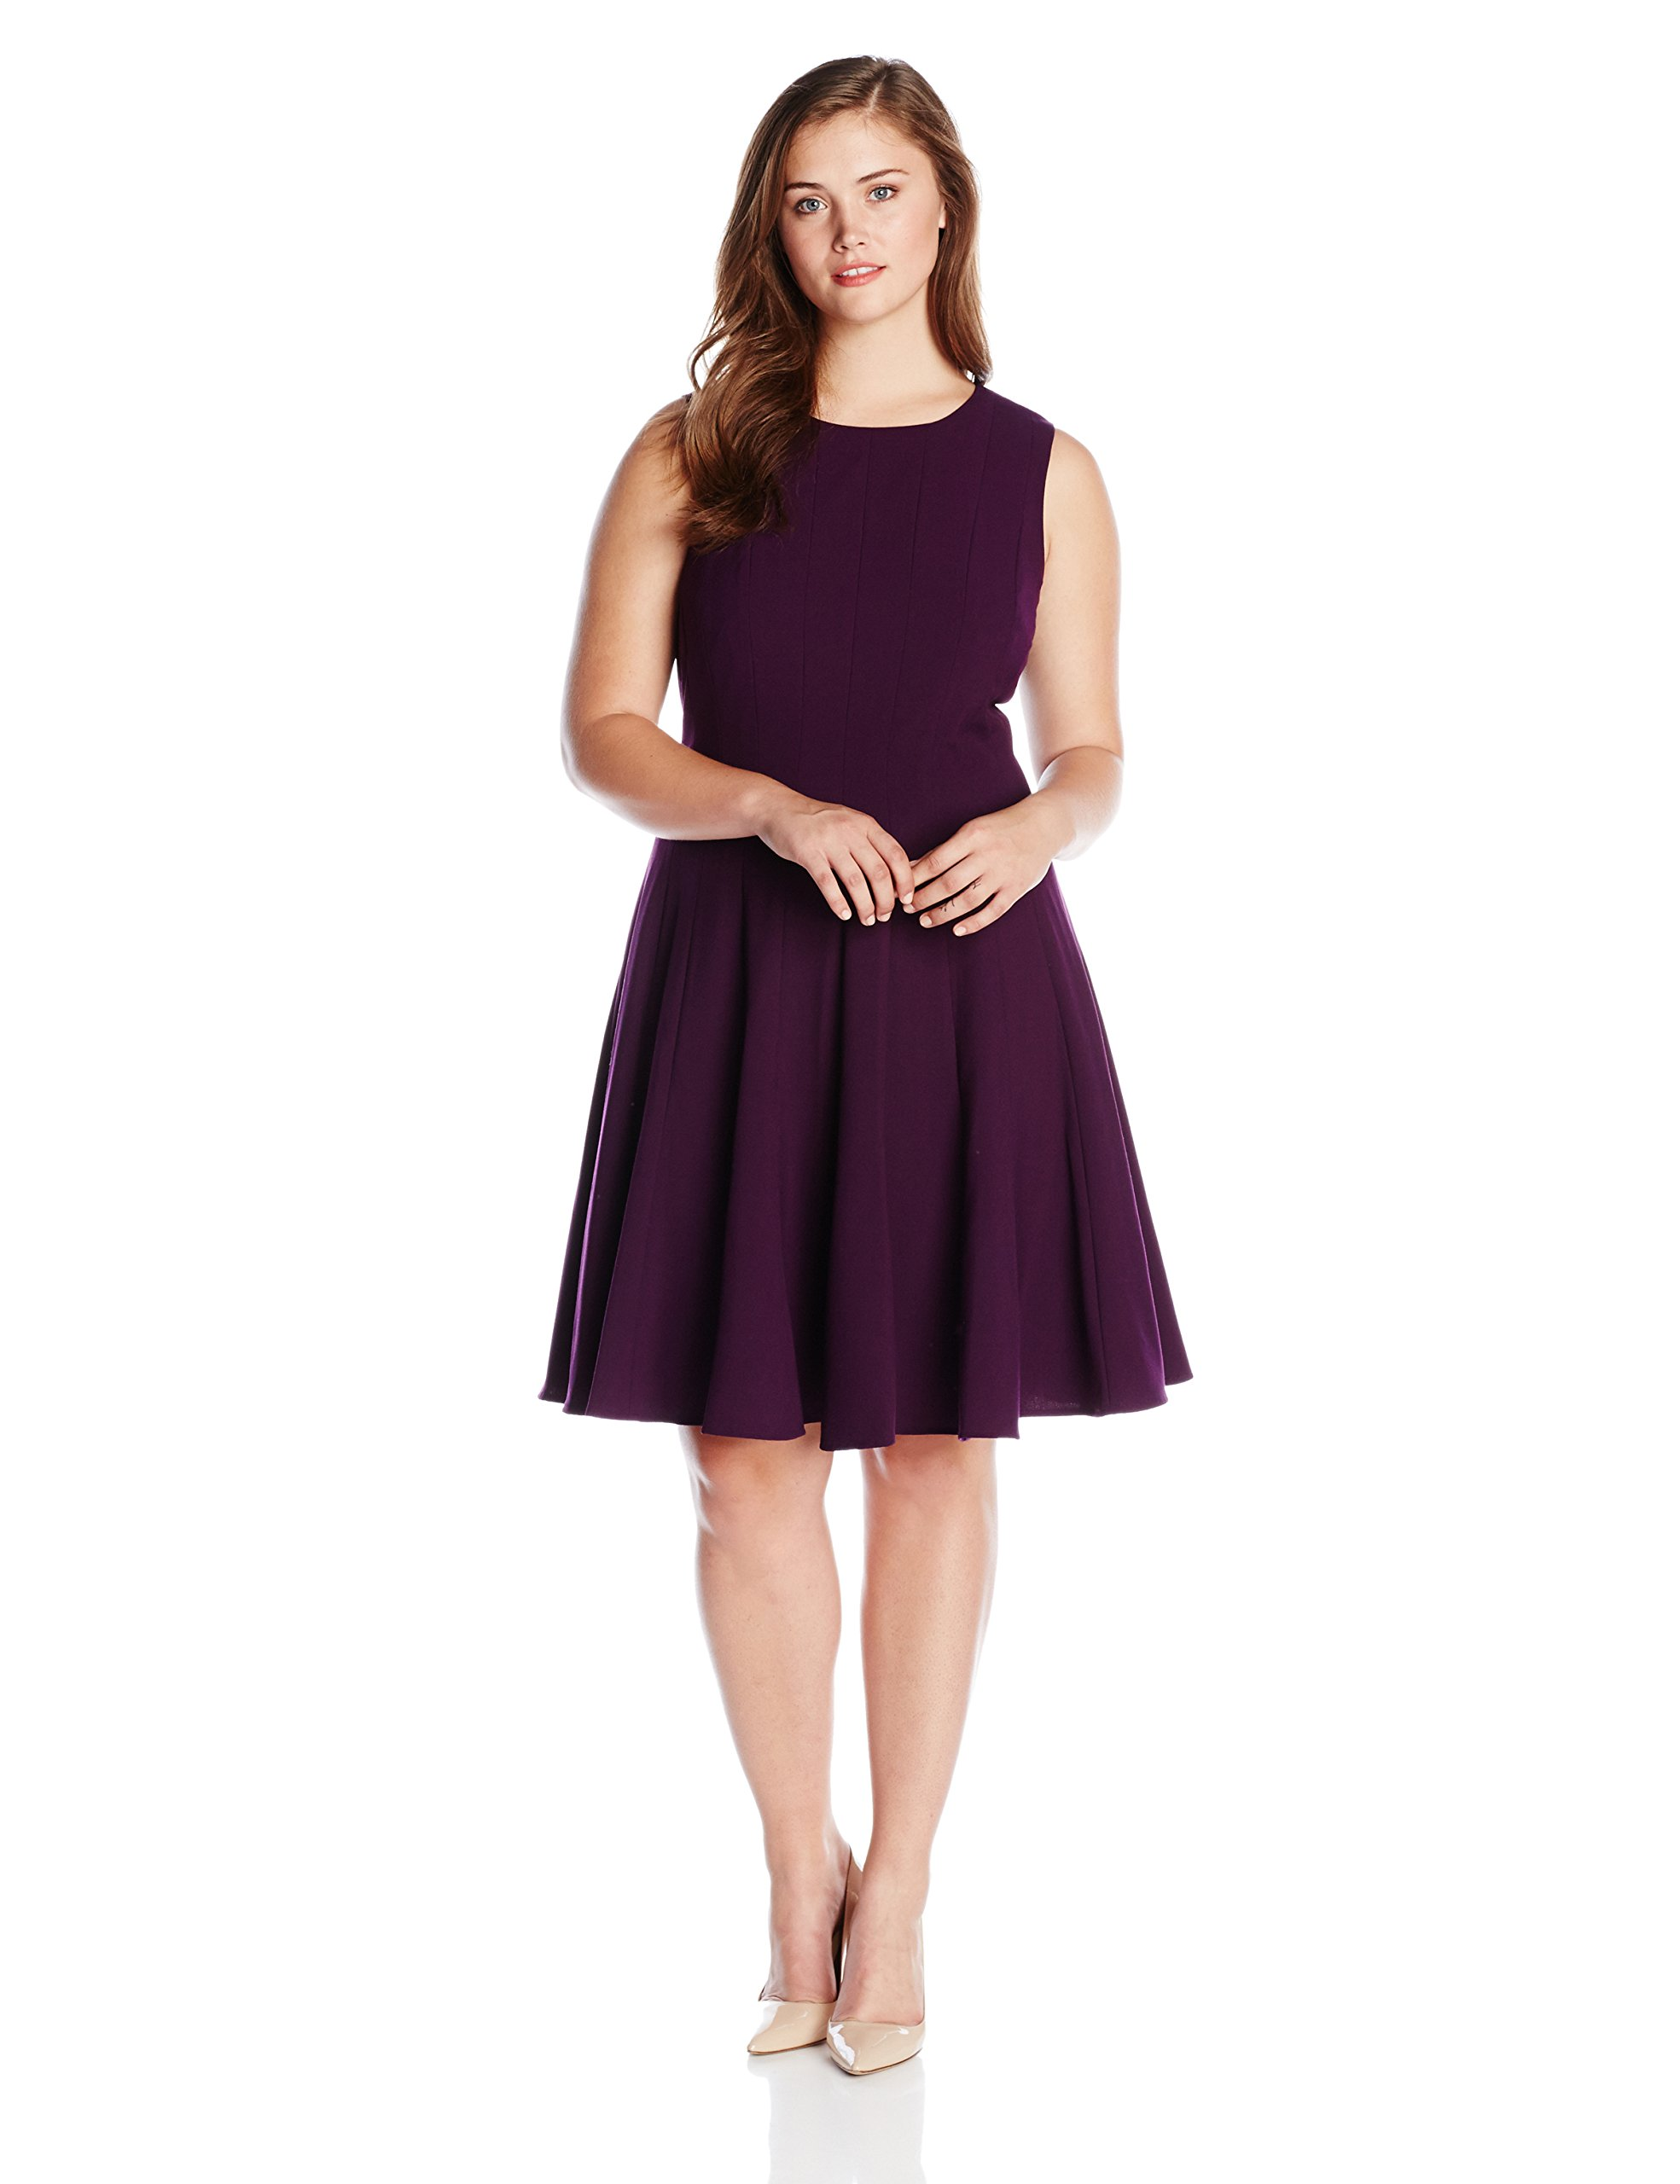 Calvin Klein Women's Plus-Size Solid Flare Sleeveless Dress in Currant